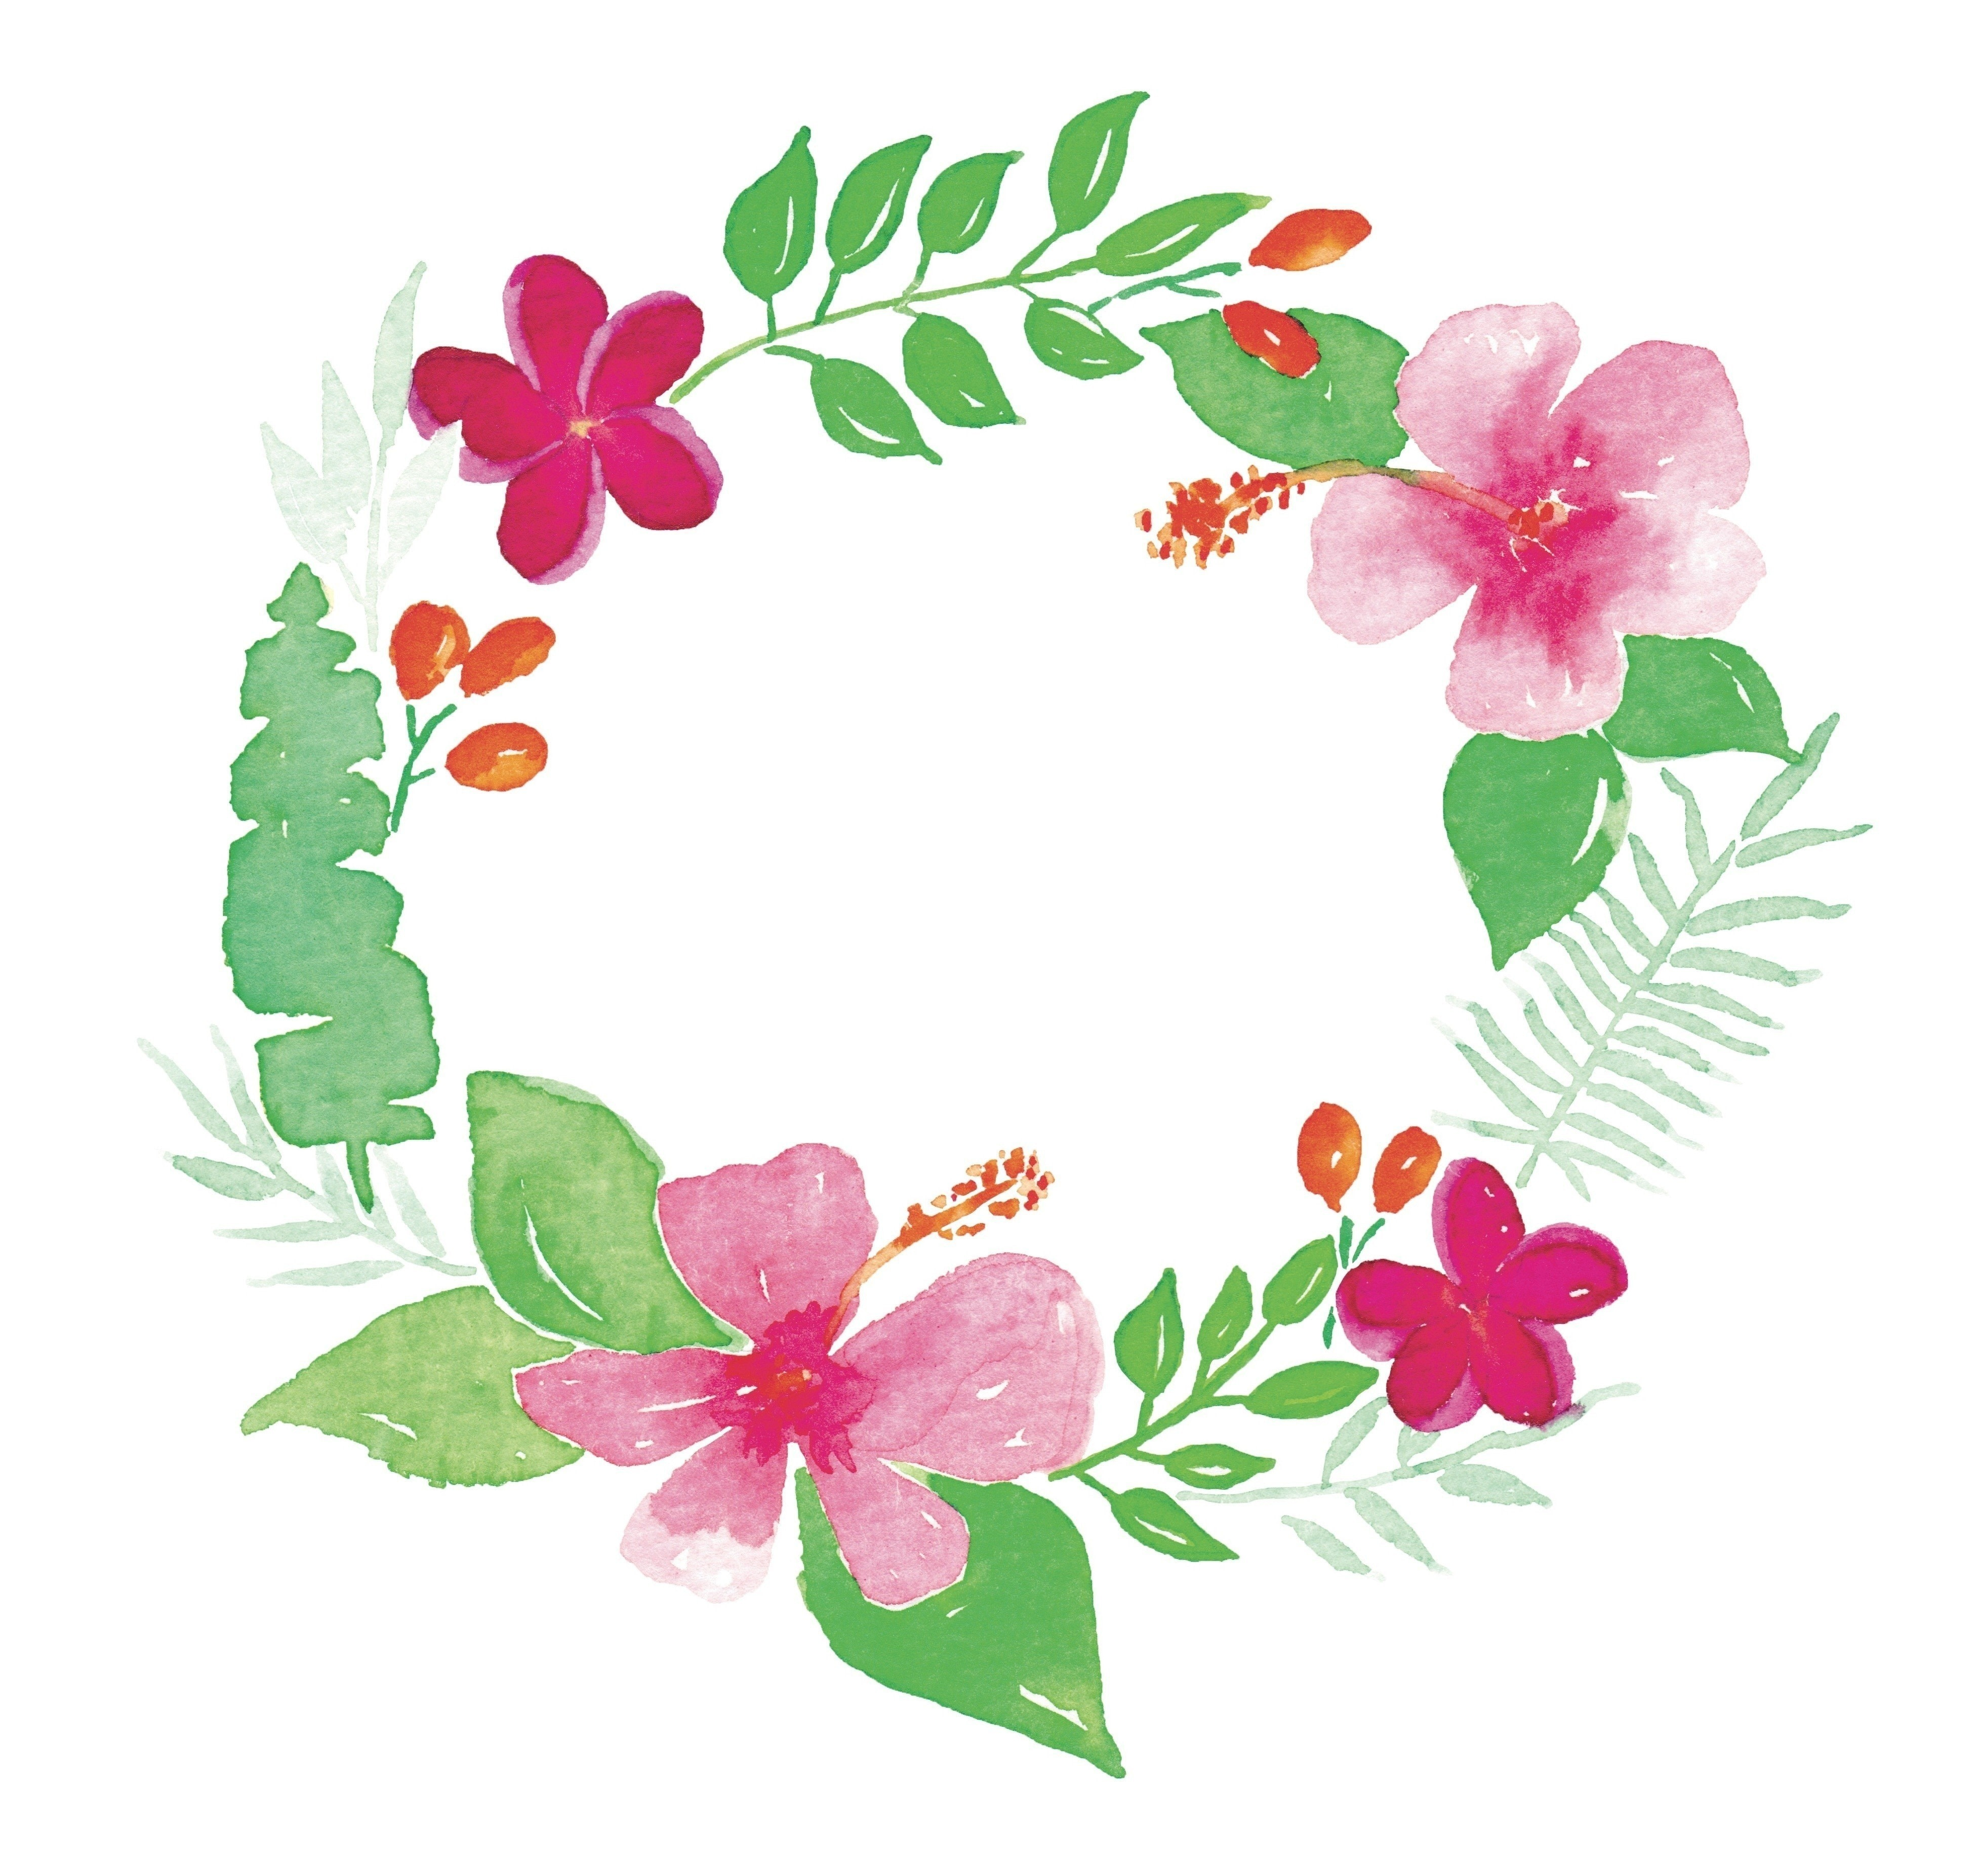 Tropical Wreath Watercolour Extract From Watercolour With Love By Lena Yokota Barth How To Paint A Piece Of Watercolor Art